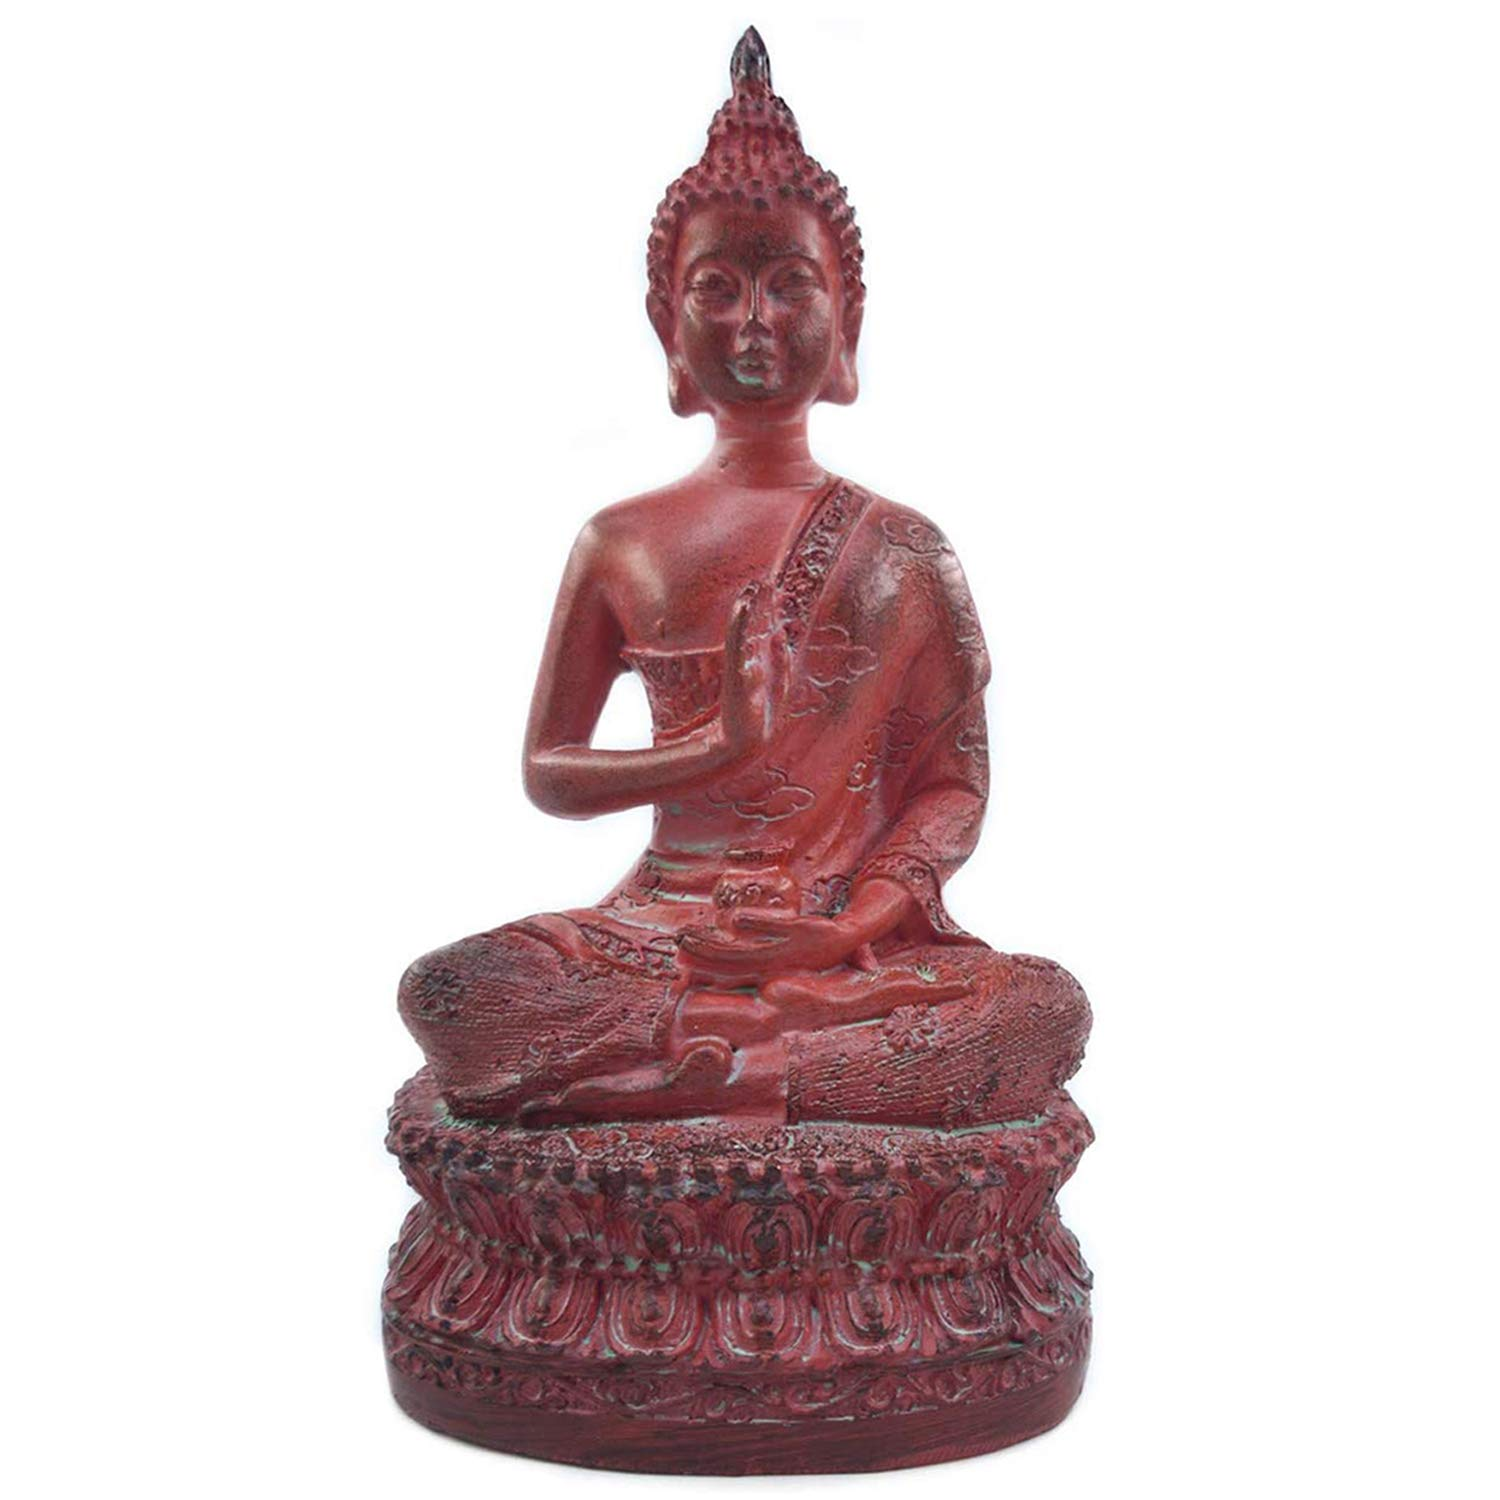 ornerx Thai Sitting Buddha Statue for Home Decor Red 6.7""